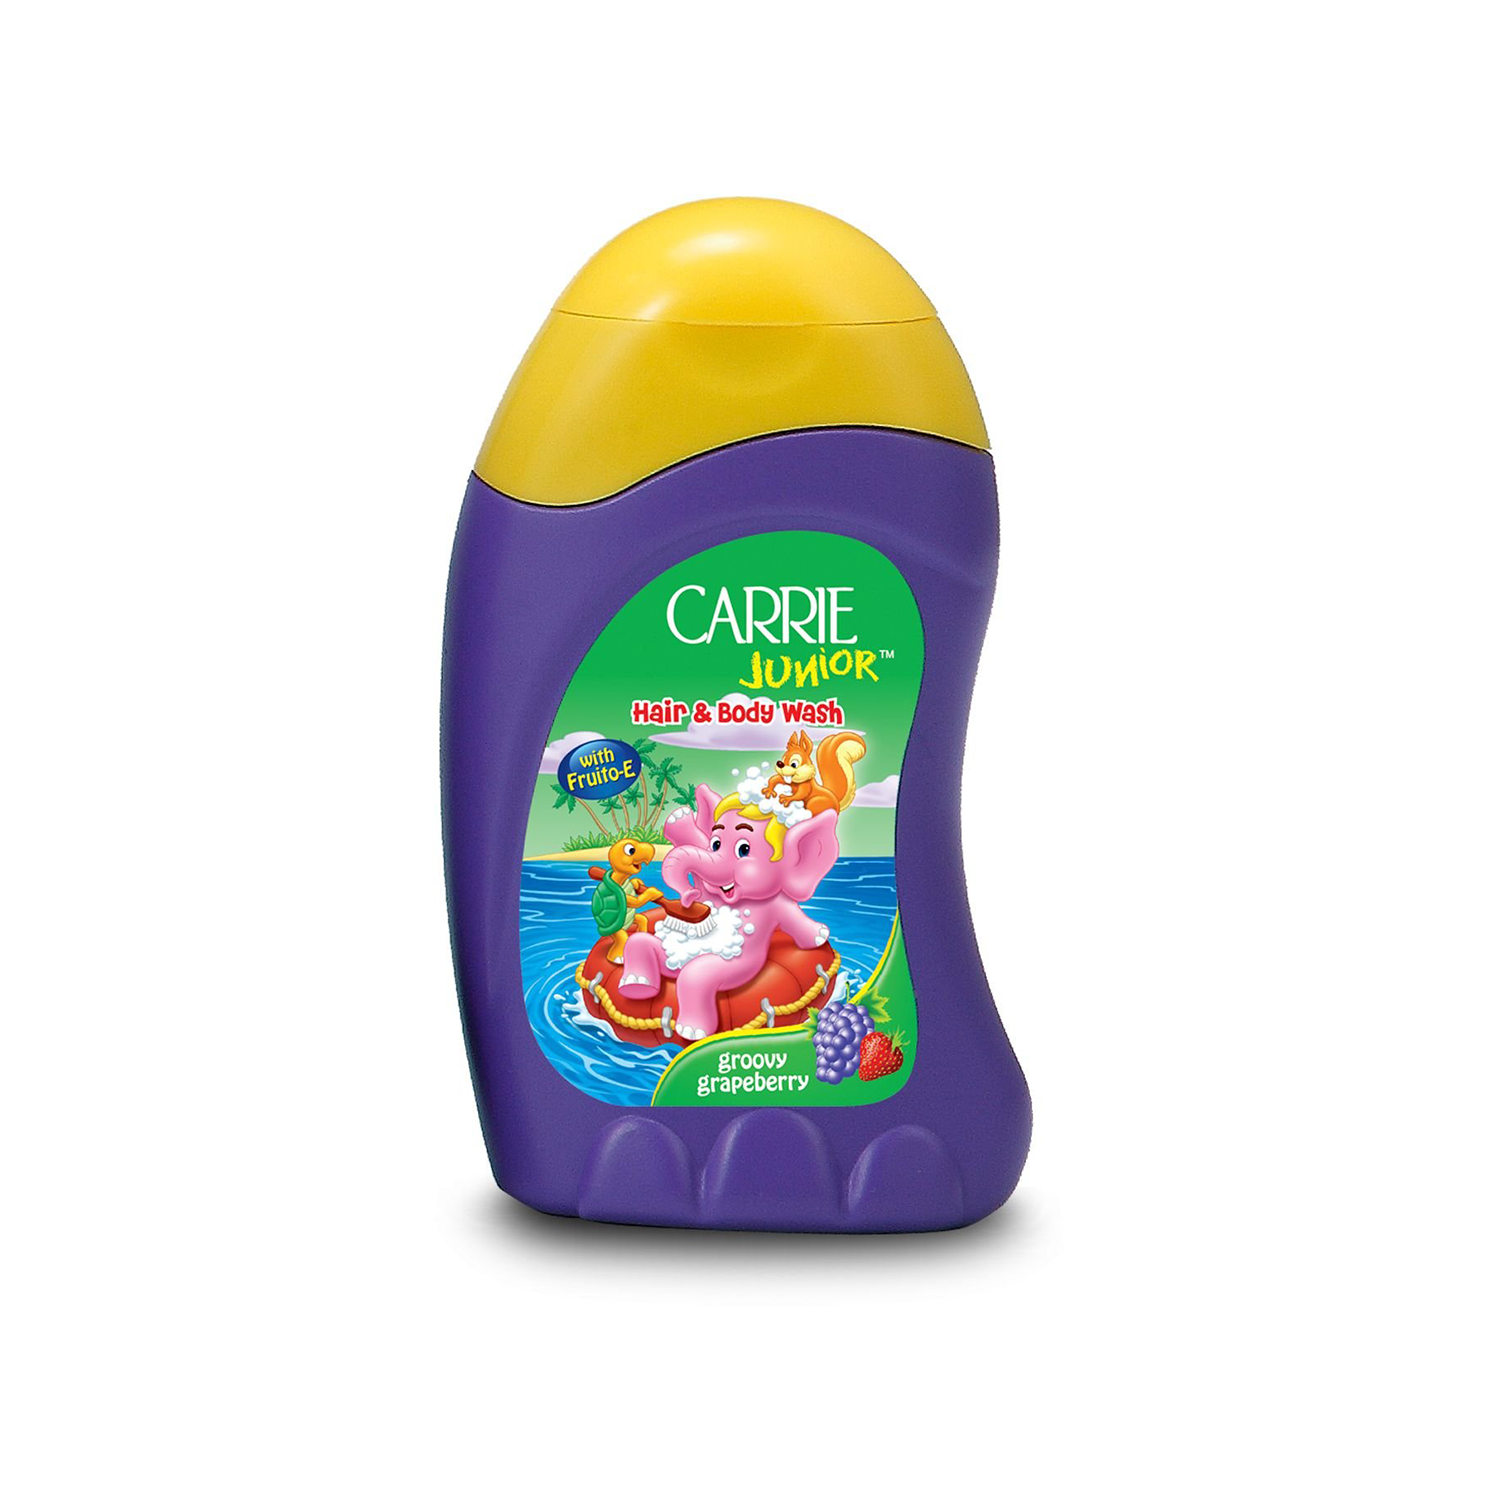 Carrie Junior Hand & Body Wash Groovy Grapeberry 280Ml